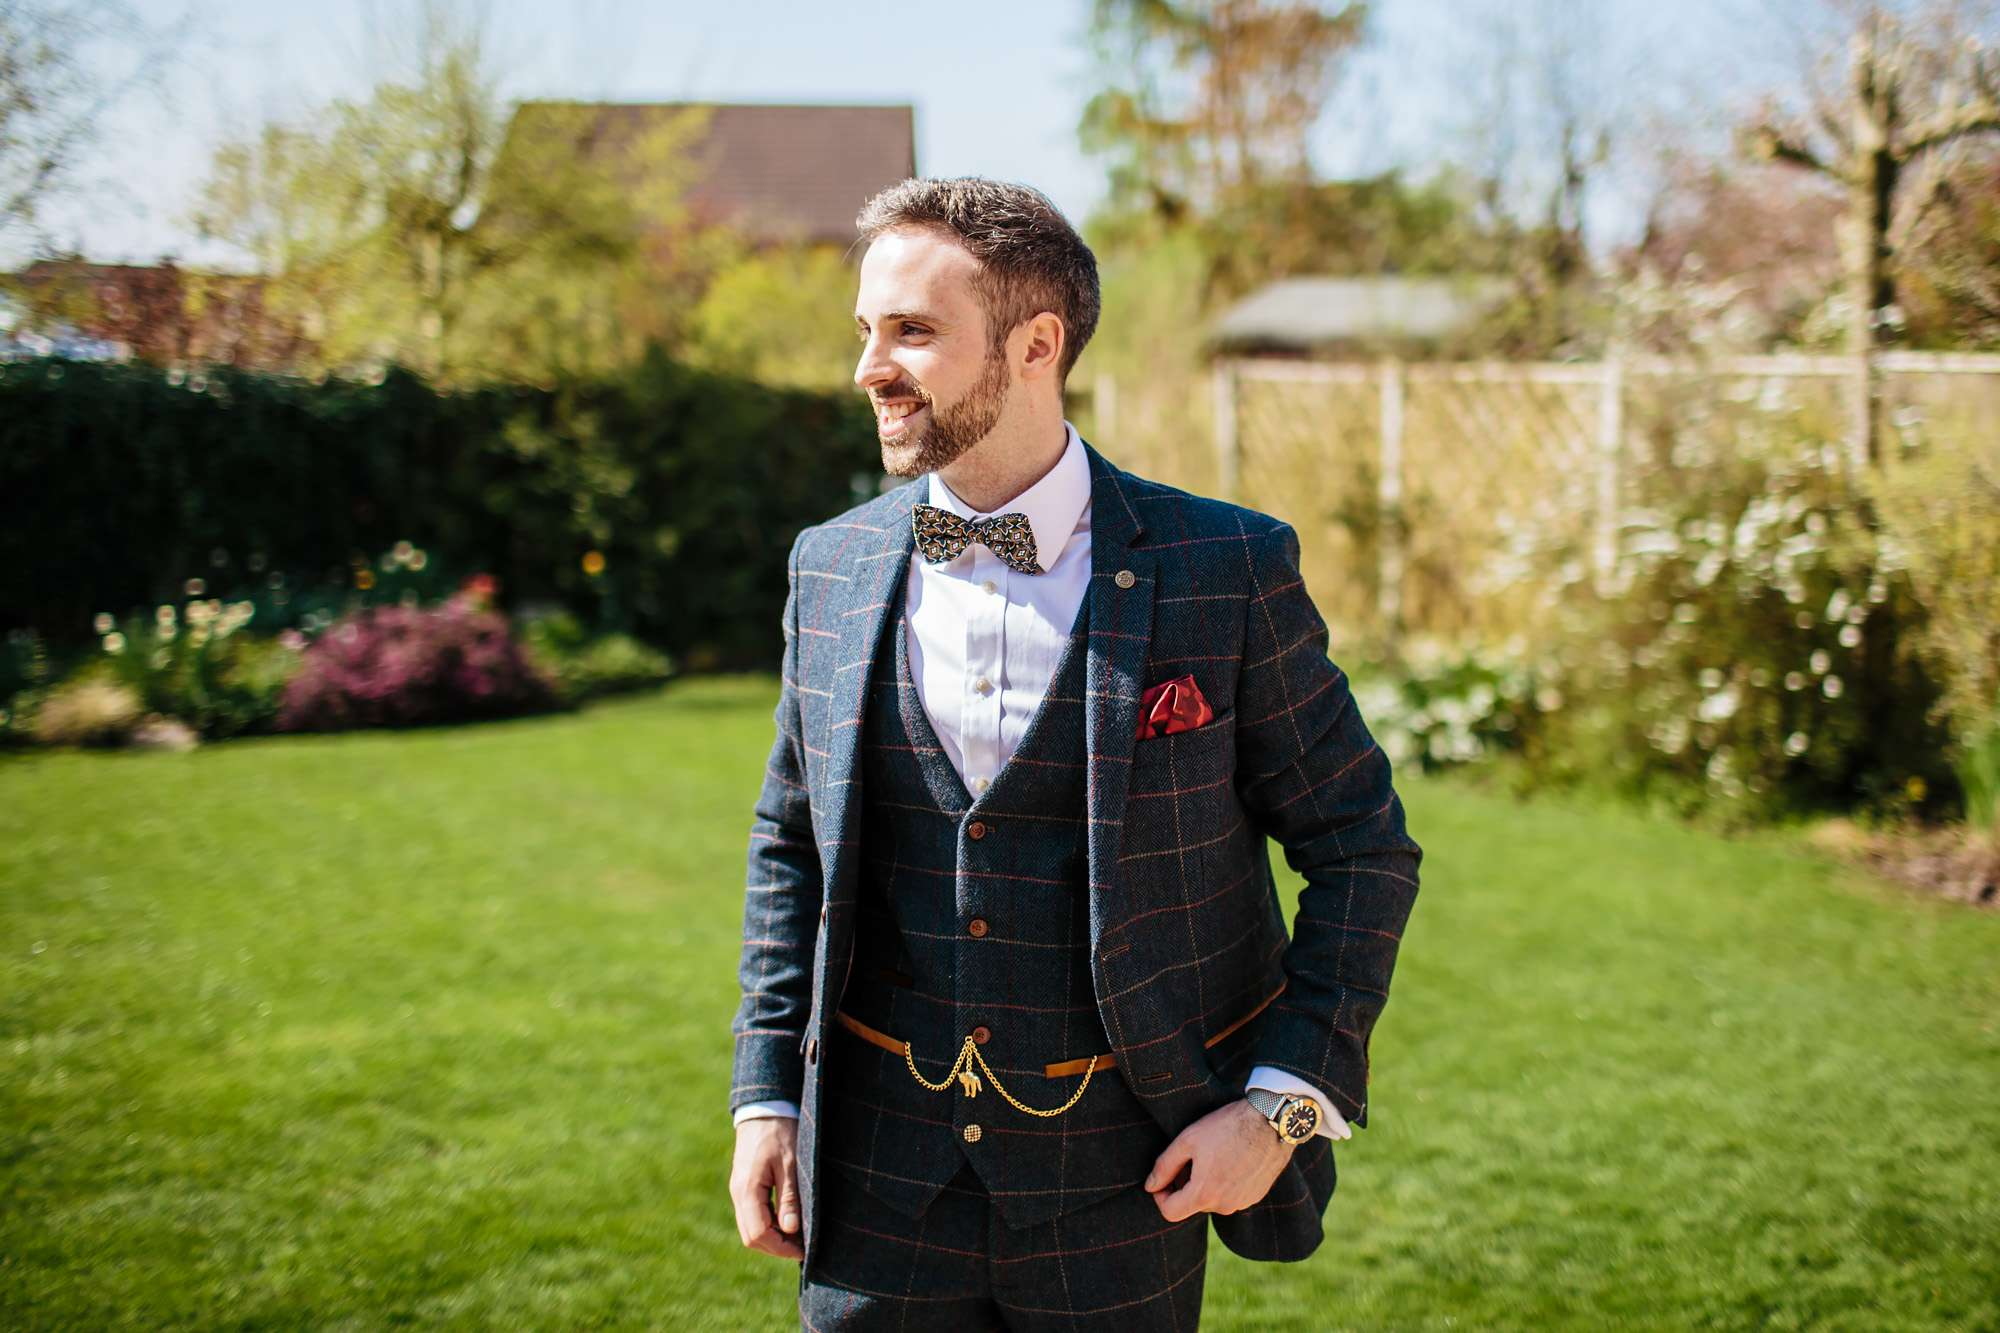 Groom in the garden on his wedding day